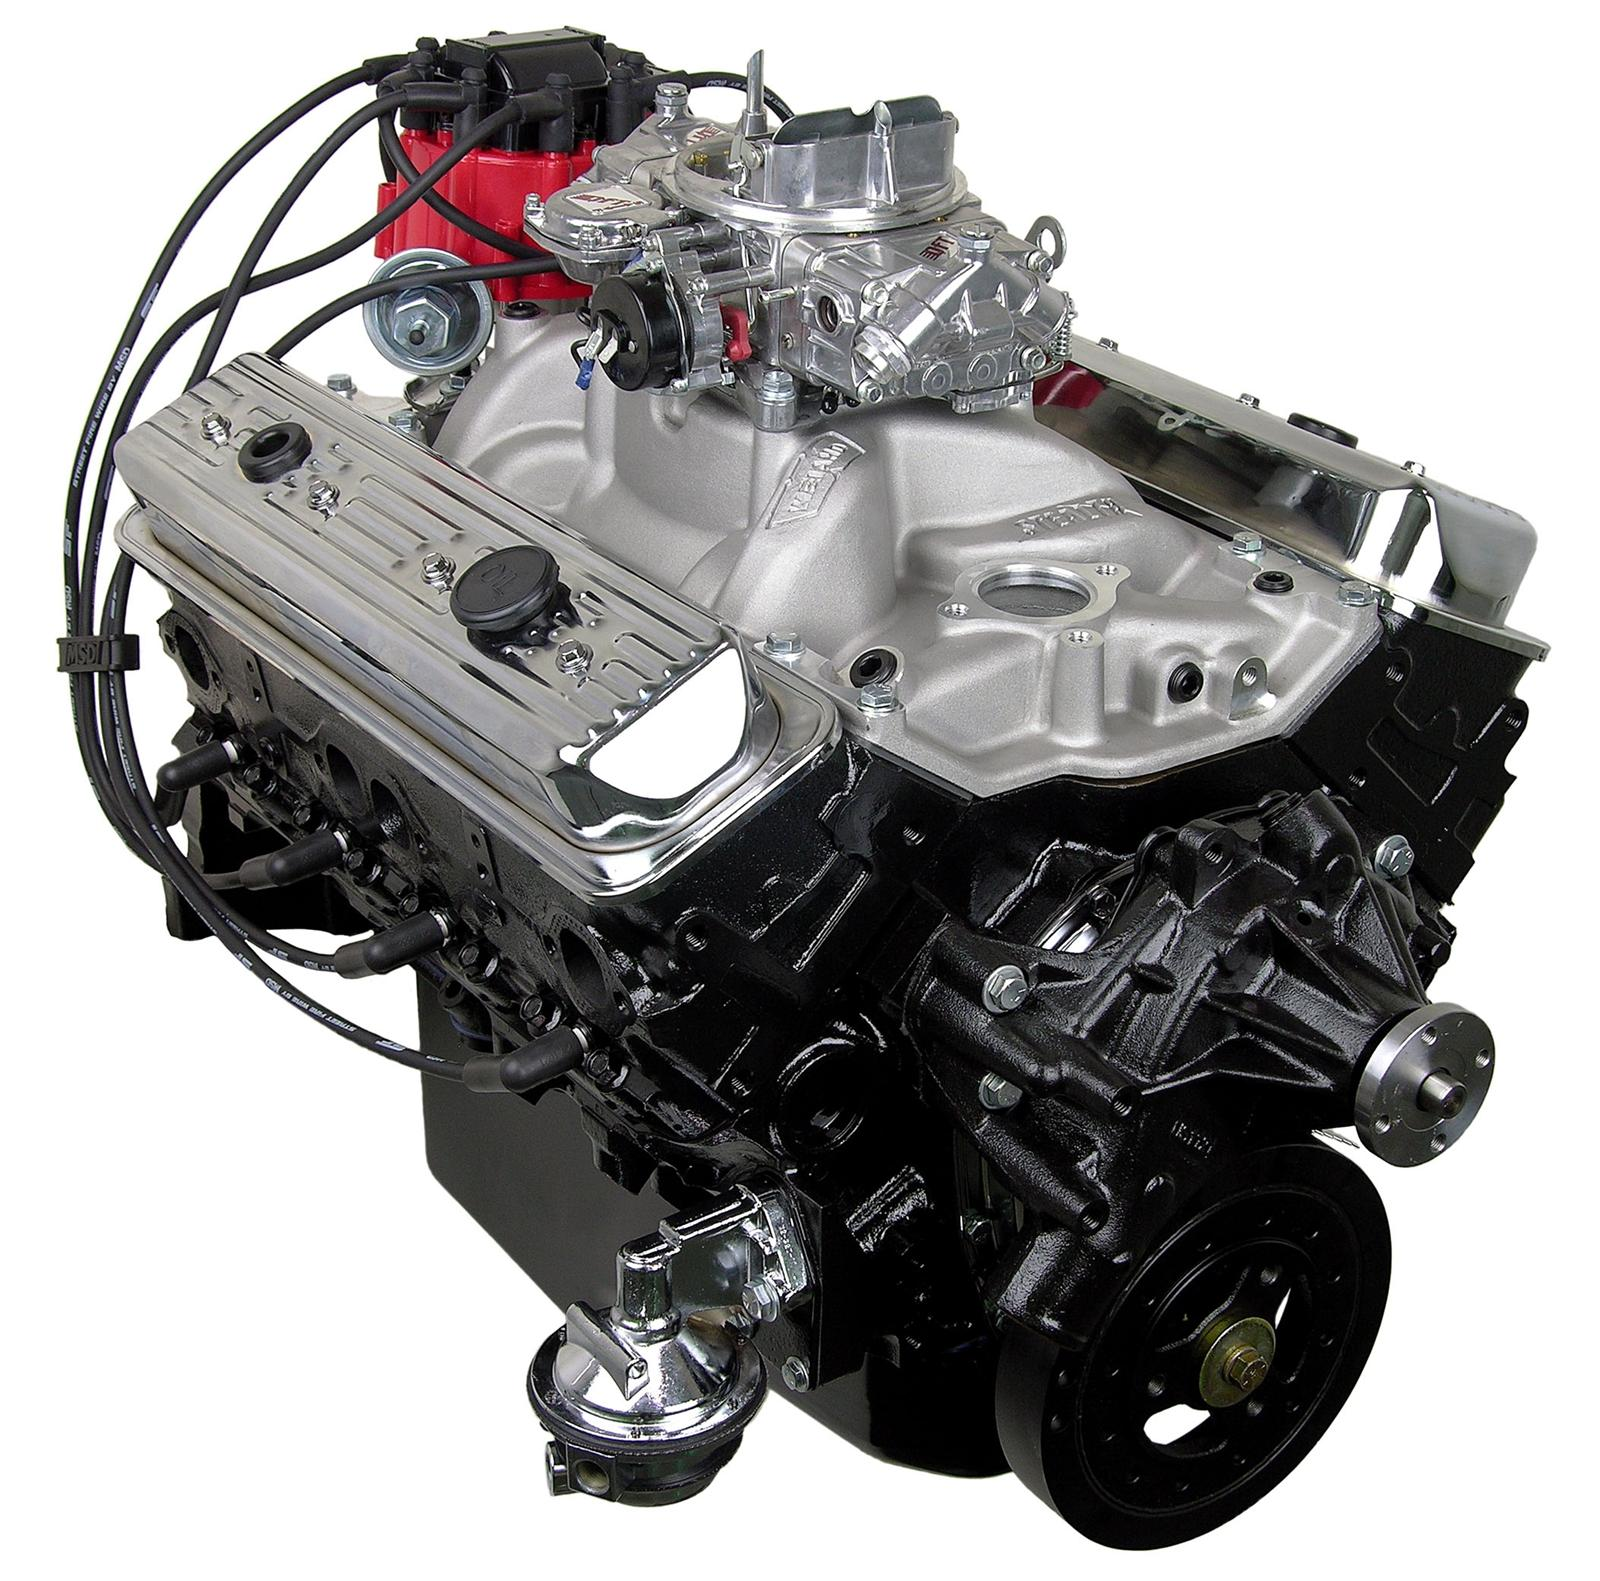 Atk High Performance Gm 350 Vortec 350hp Stage 3 Crate